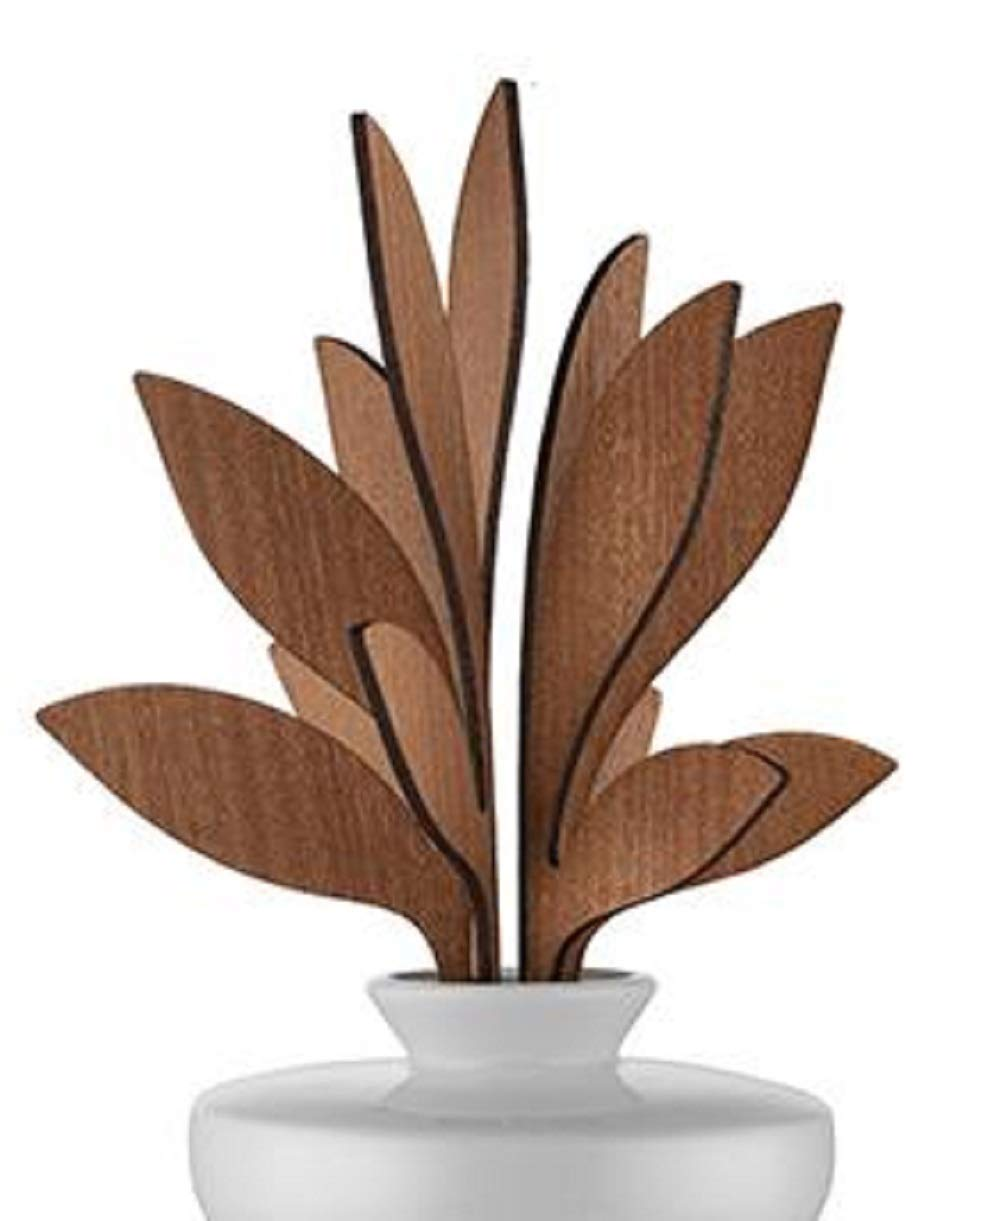 Alessi The Five Seasons Ahhh Replacement Diffuser Leaves, Mahogany Wood, by Marcel Wanders by Alessi